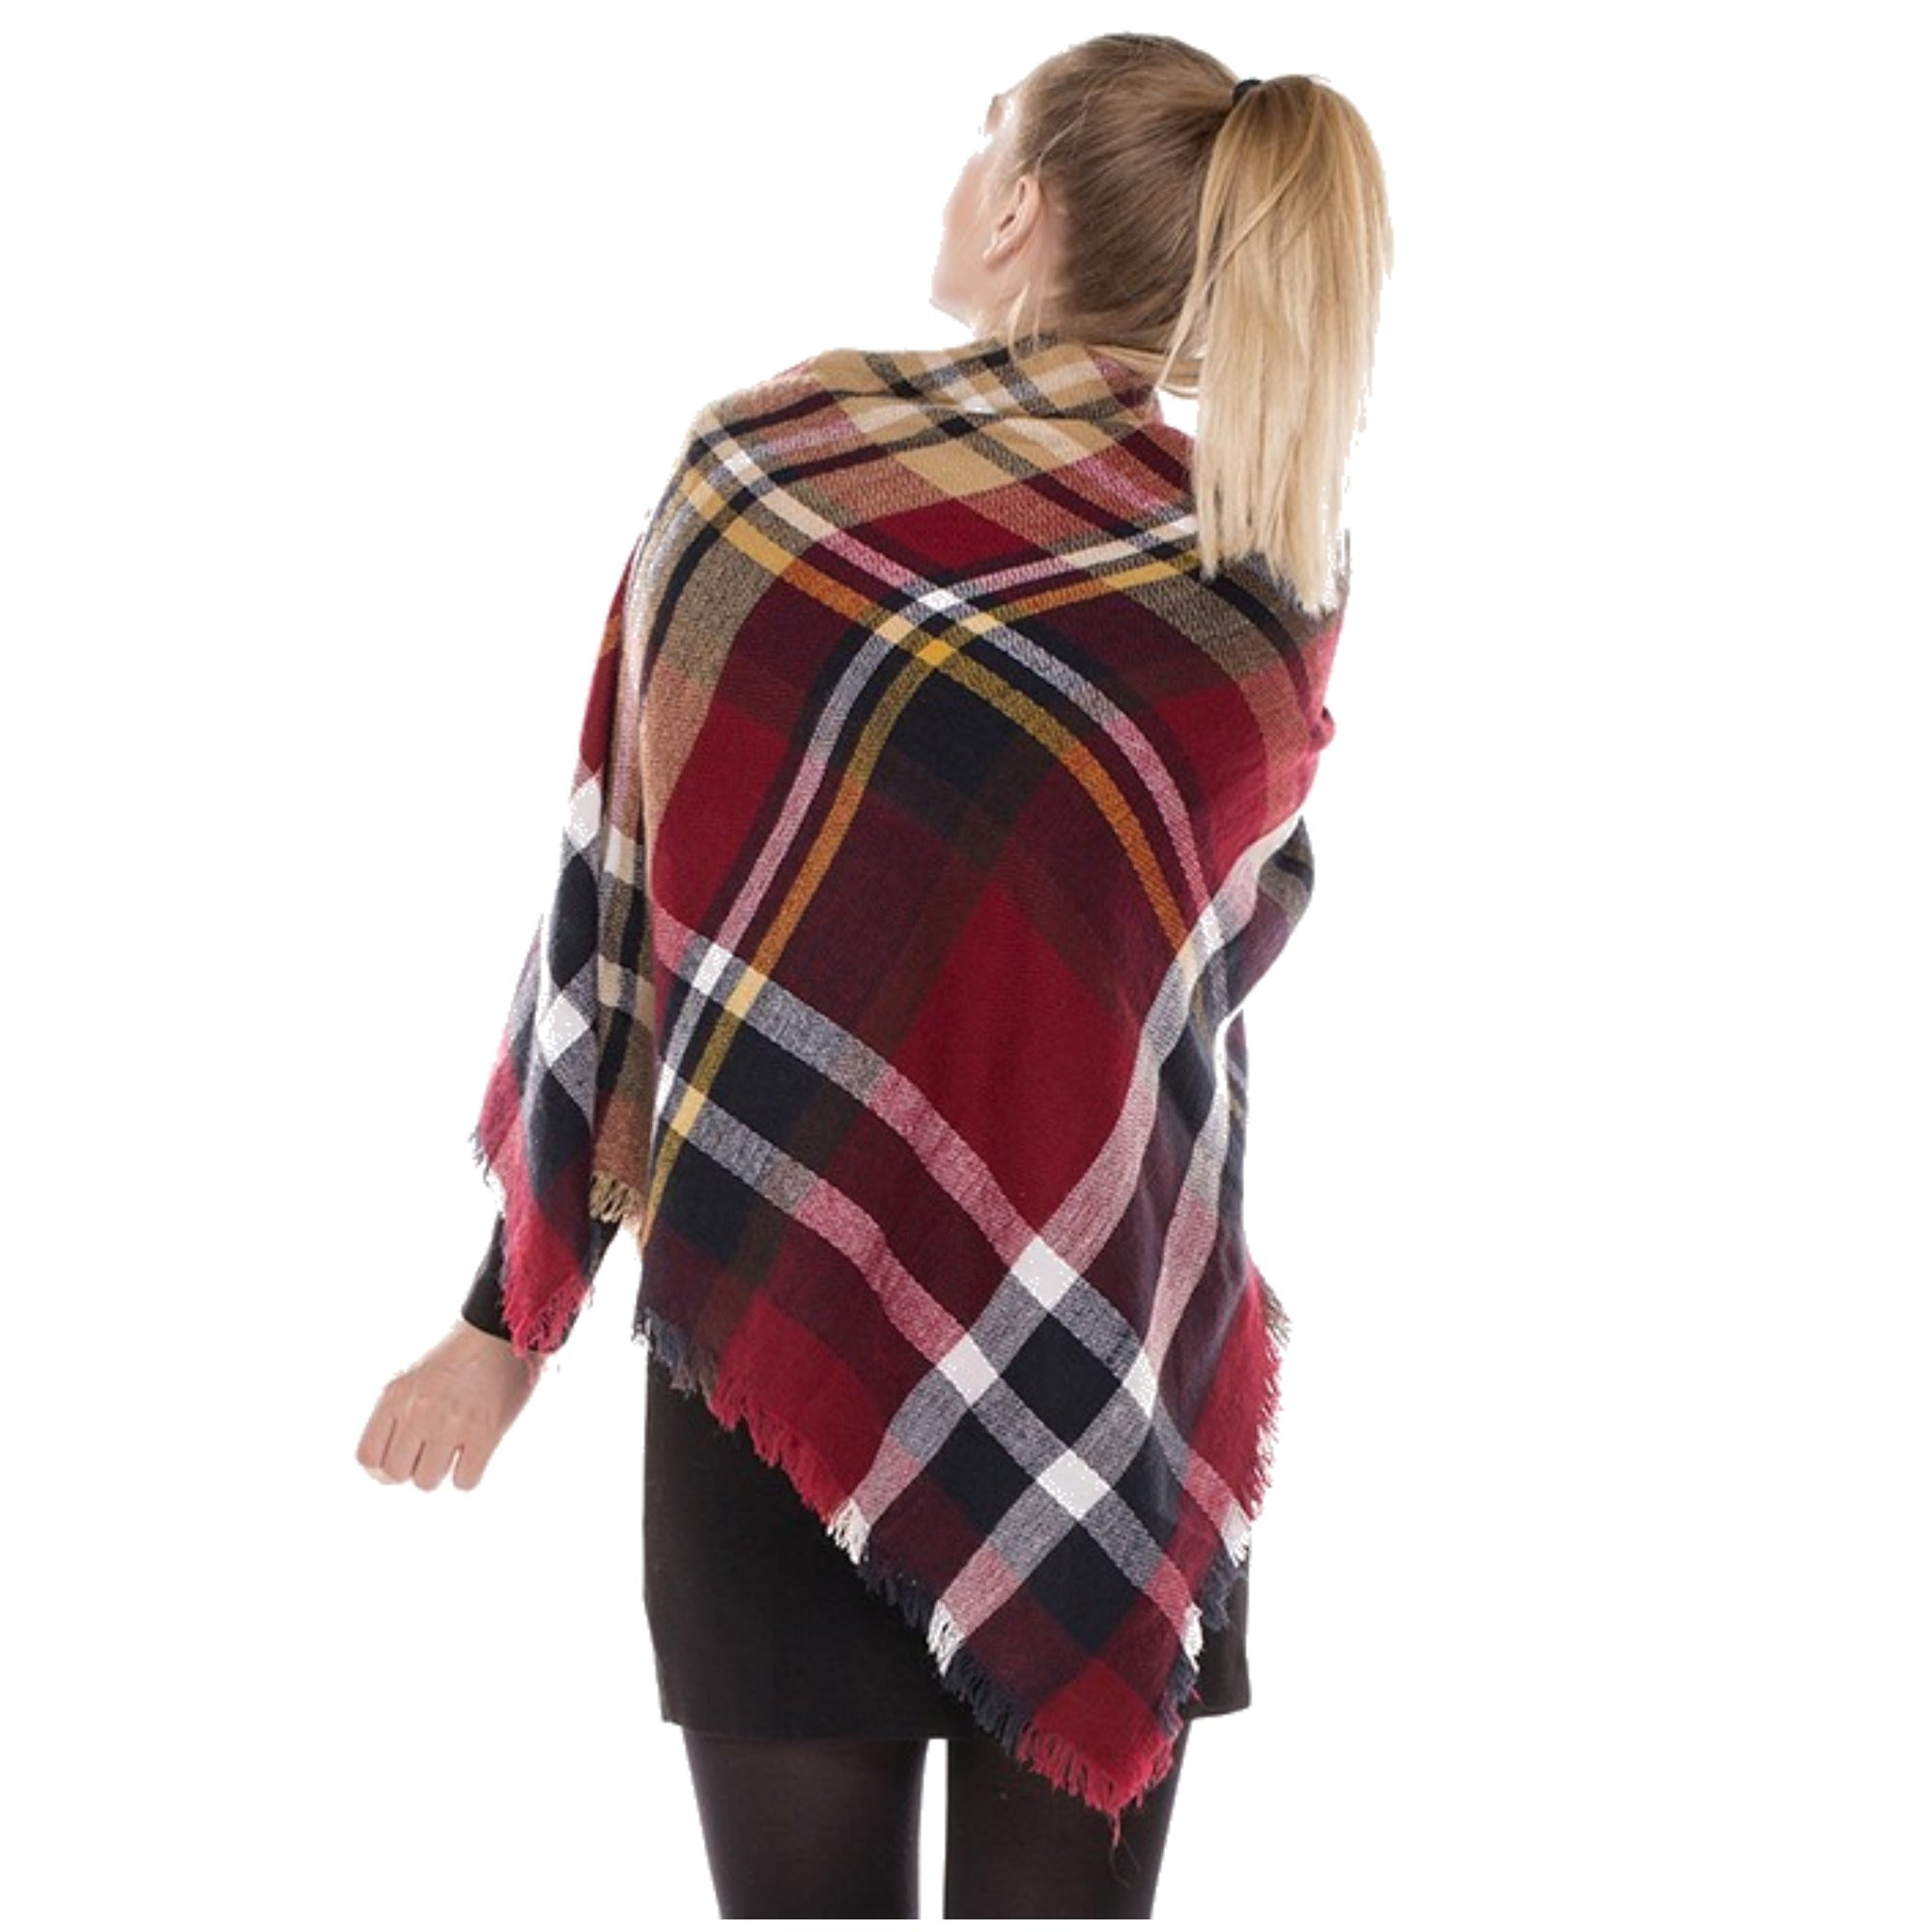 Burgundy Blanket Scarf- ShopLuLu.com , New York's Fashion District - NYC - Factory Direct. Basic As it Should Be